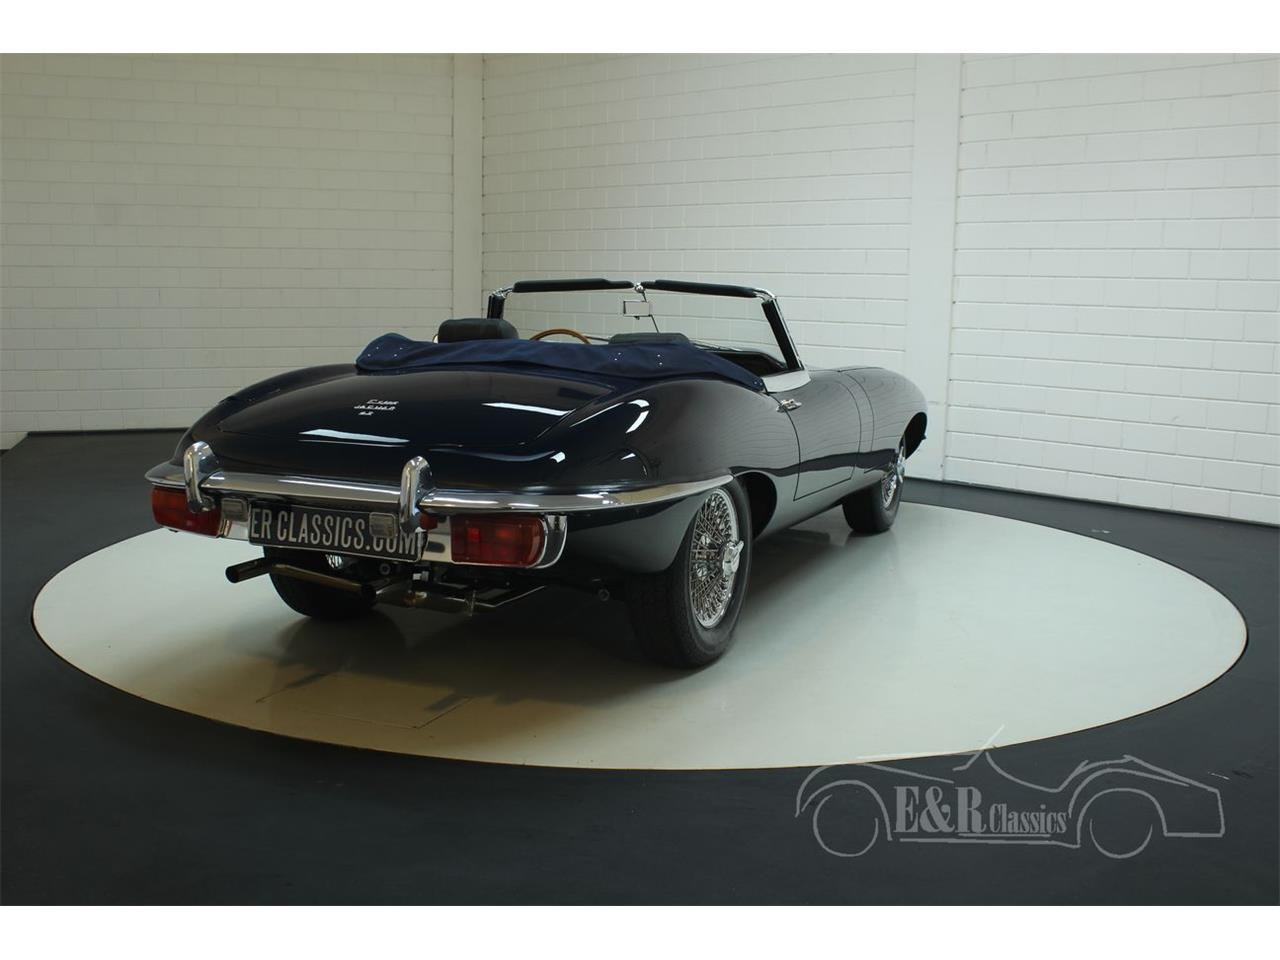 Large Picture of Classic '69 Jaguar E-Type located in Waalwijk Noord-Brabant - $139,400.00 - Q45K